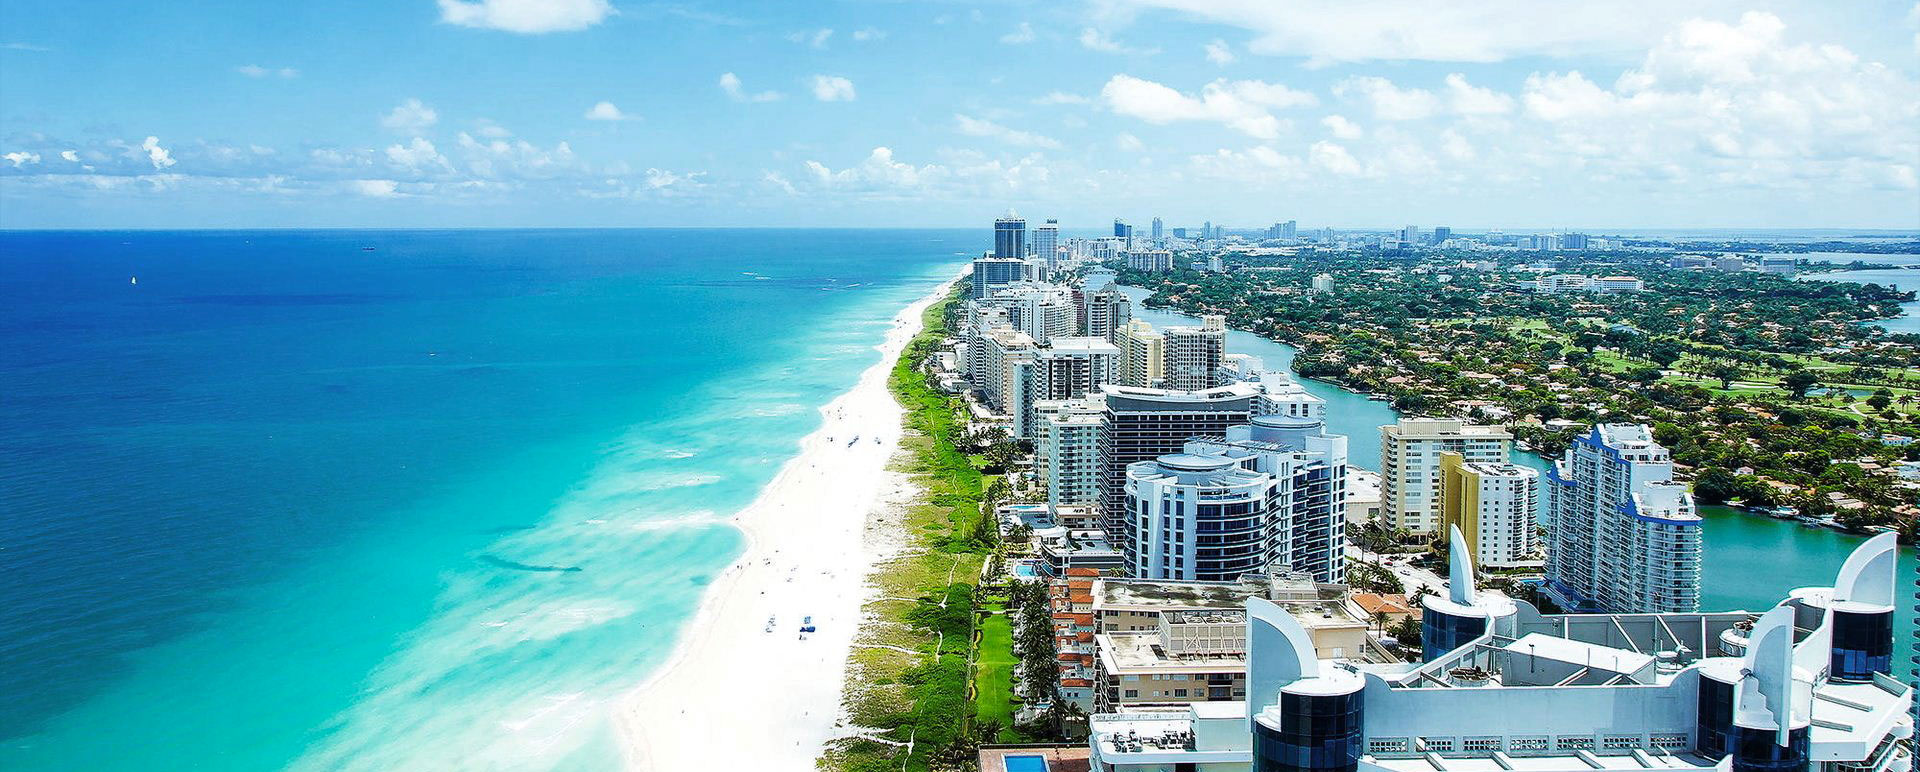 Miami Beach from Drone View